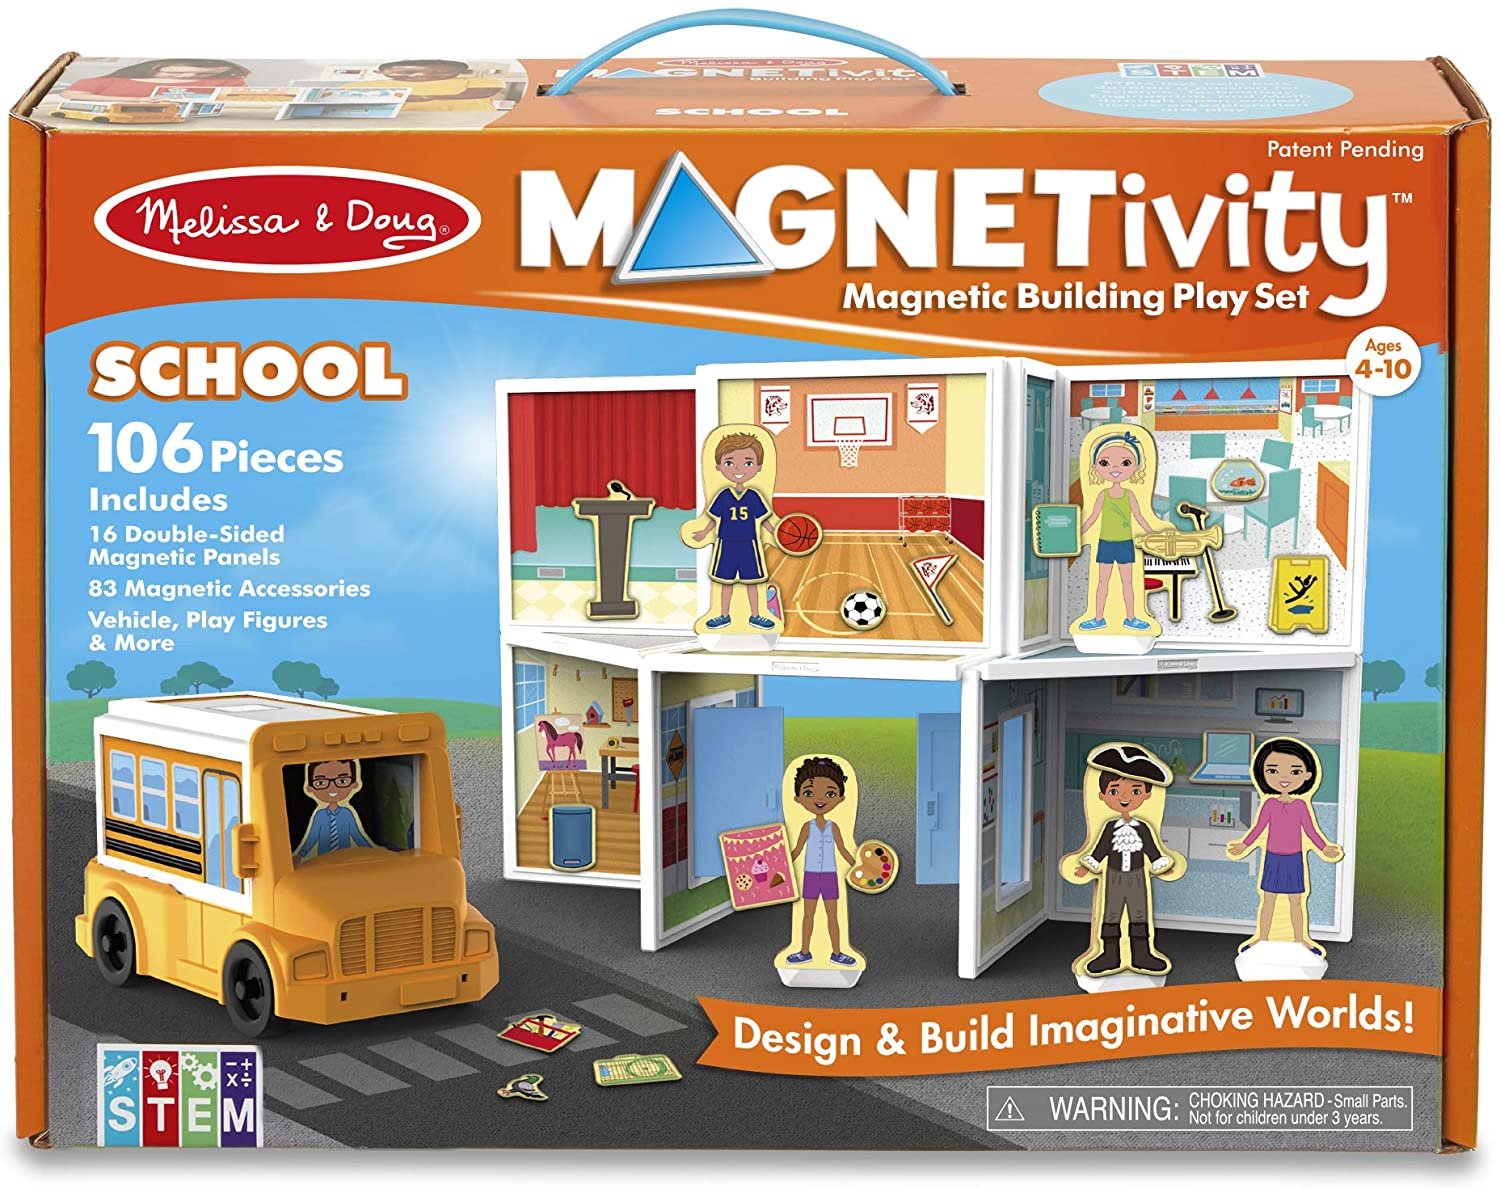 Melissa & Doug Magnetivity Magnetic Building Play Set - School